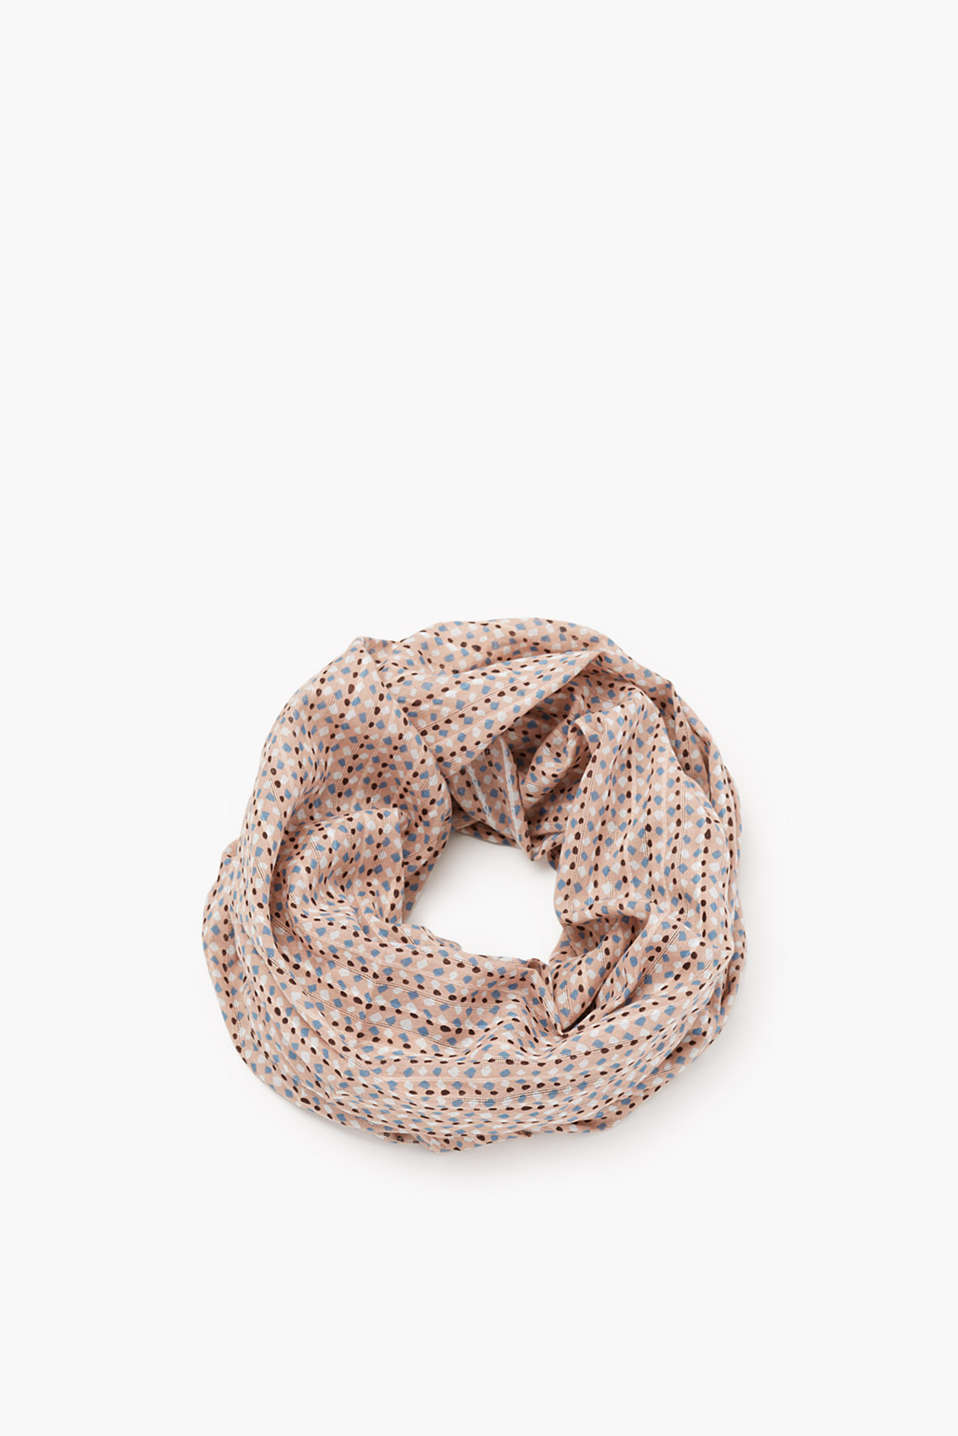 Pure cotton snood with a large polka dot print and fine woven texture